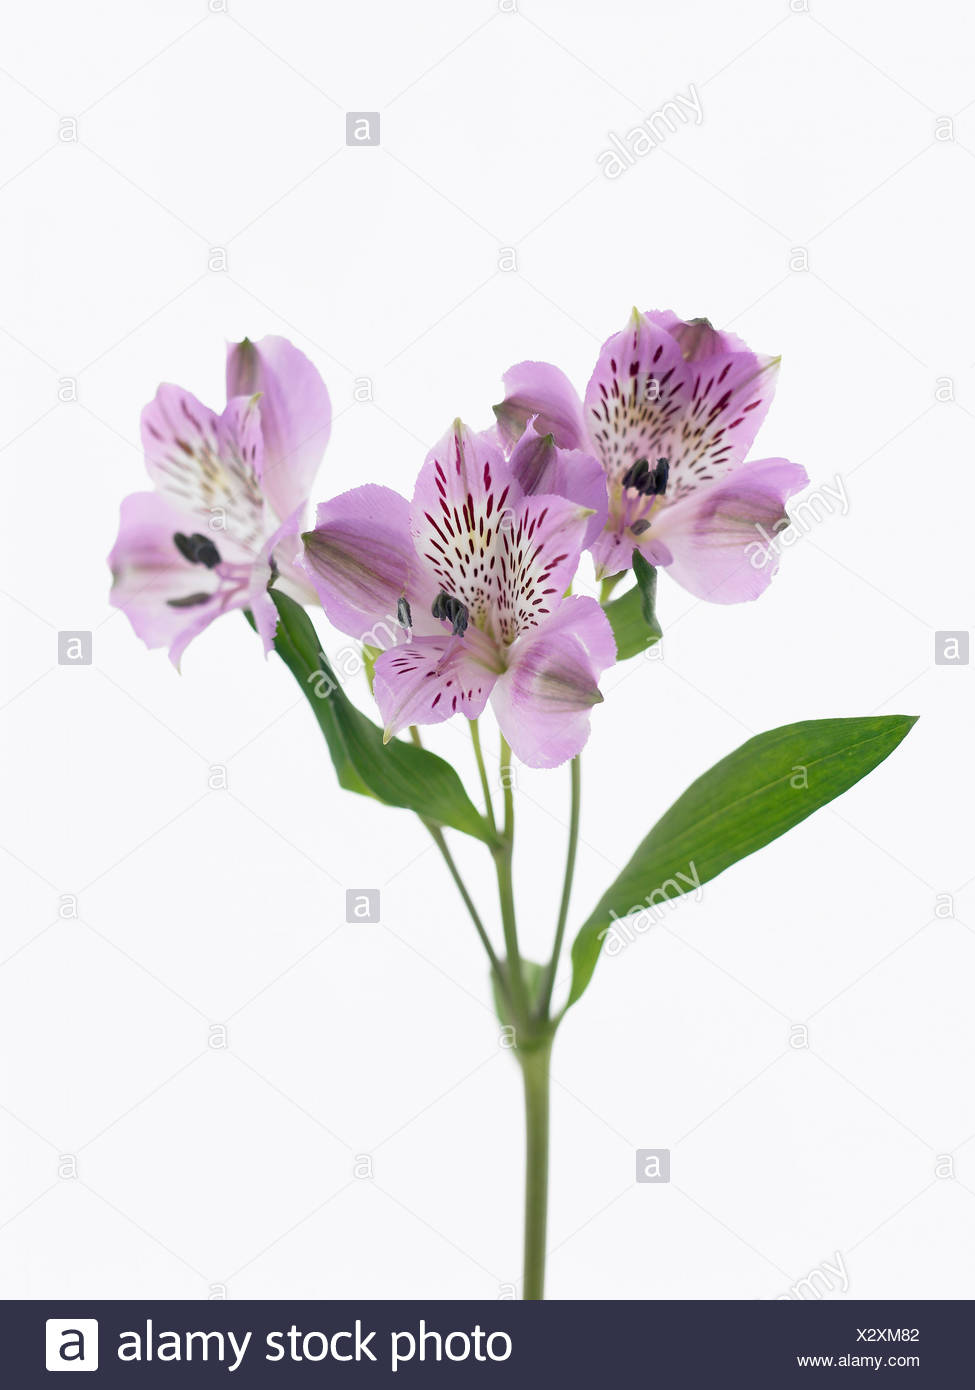 Alstroemeria Cultivar Peruvian Lily Purple Flowers On A Single Stem Against A White Background Stock Photo Alamy